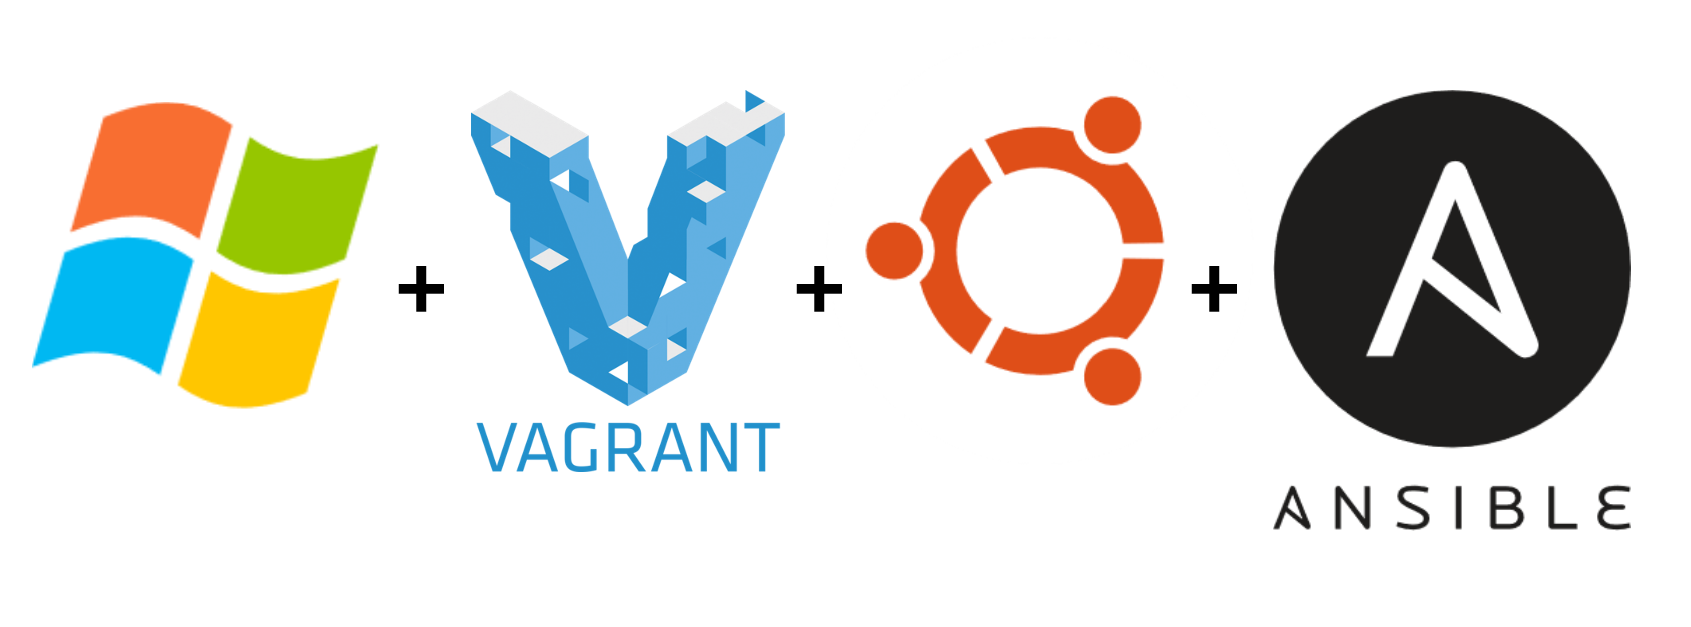 logos_windows_vagrant_ubuntu_ansible